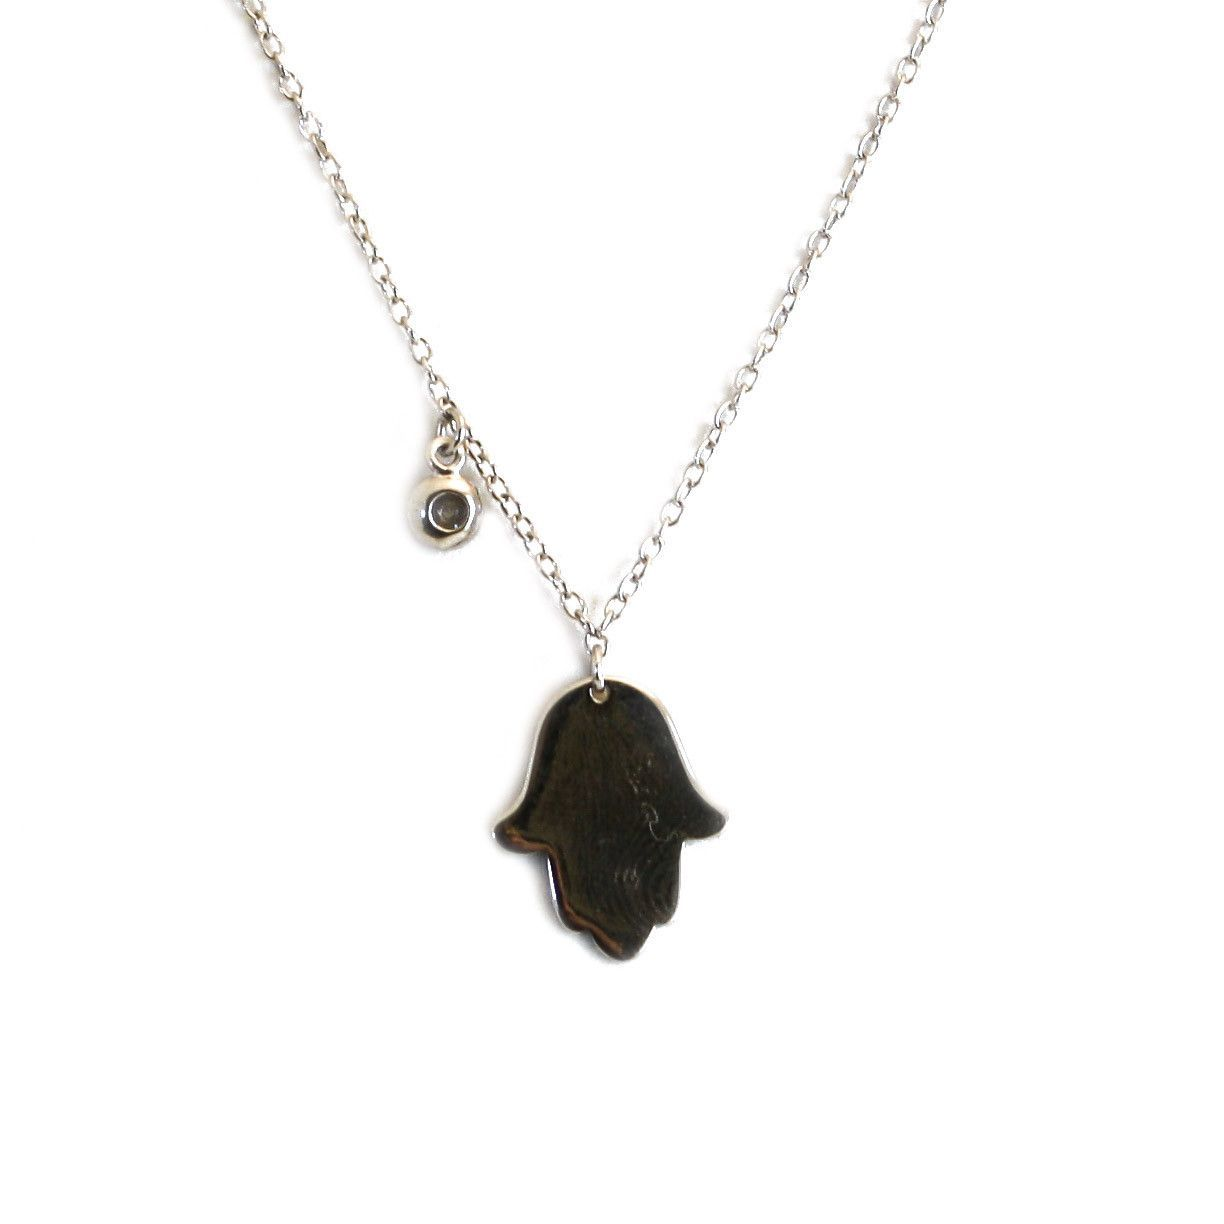 Peter & Gabby Halmsa Necklace (Sterling Silver)